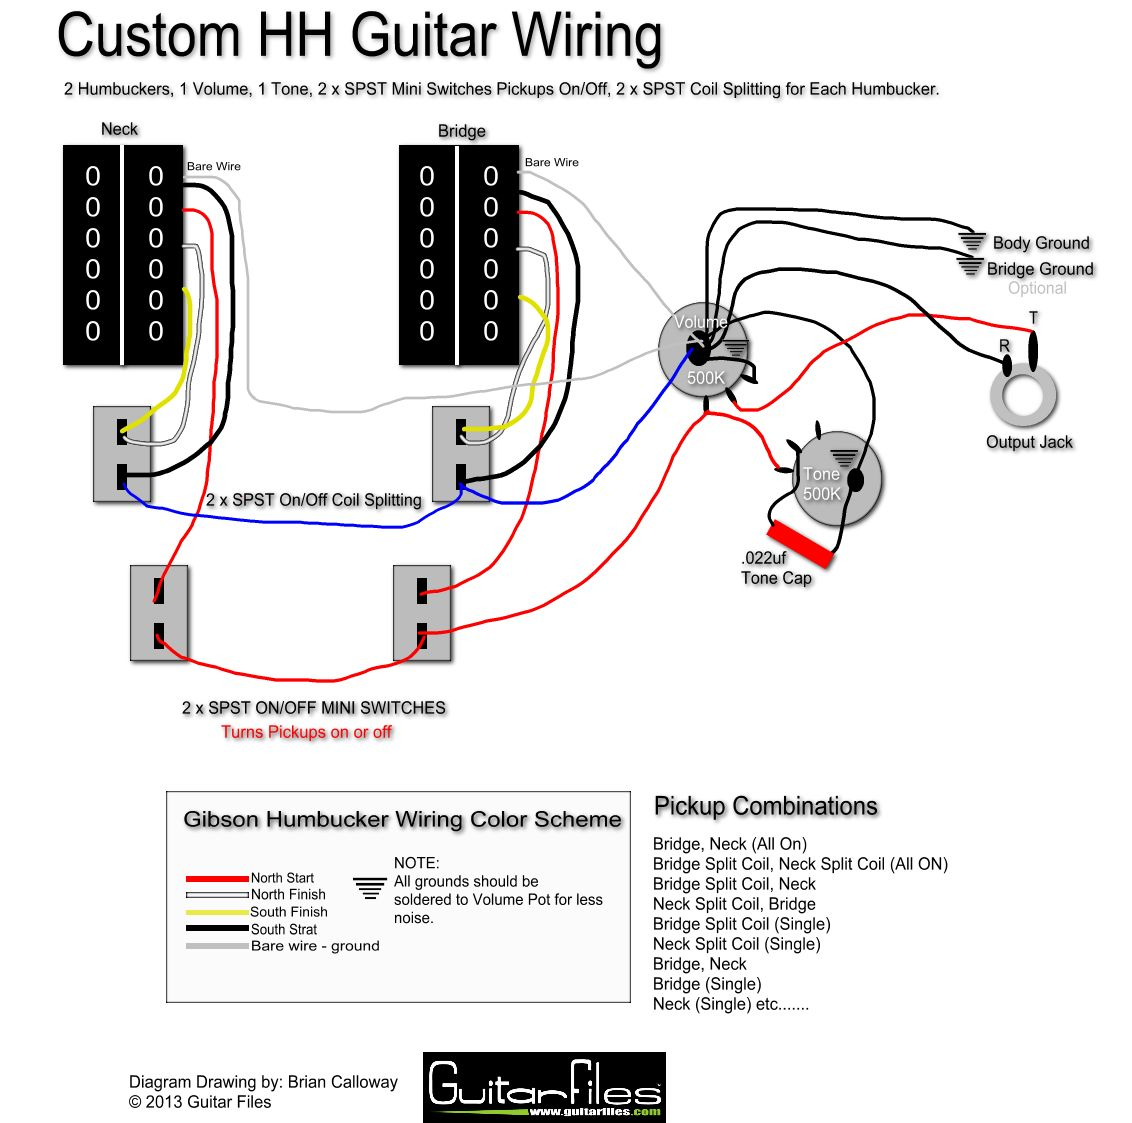 Custom Hh Wiring Schema Diagrams Chopper Wire Diagram With Spst Coil Splitting And Switching Harley